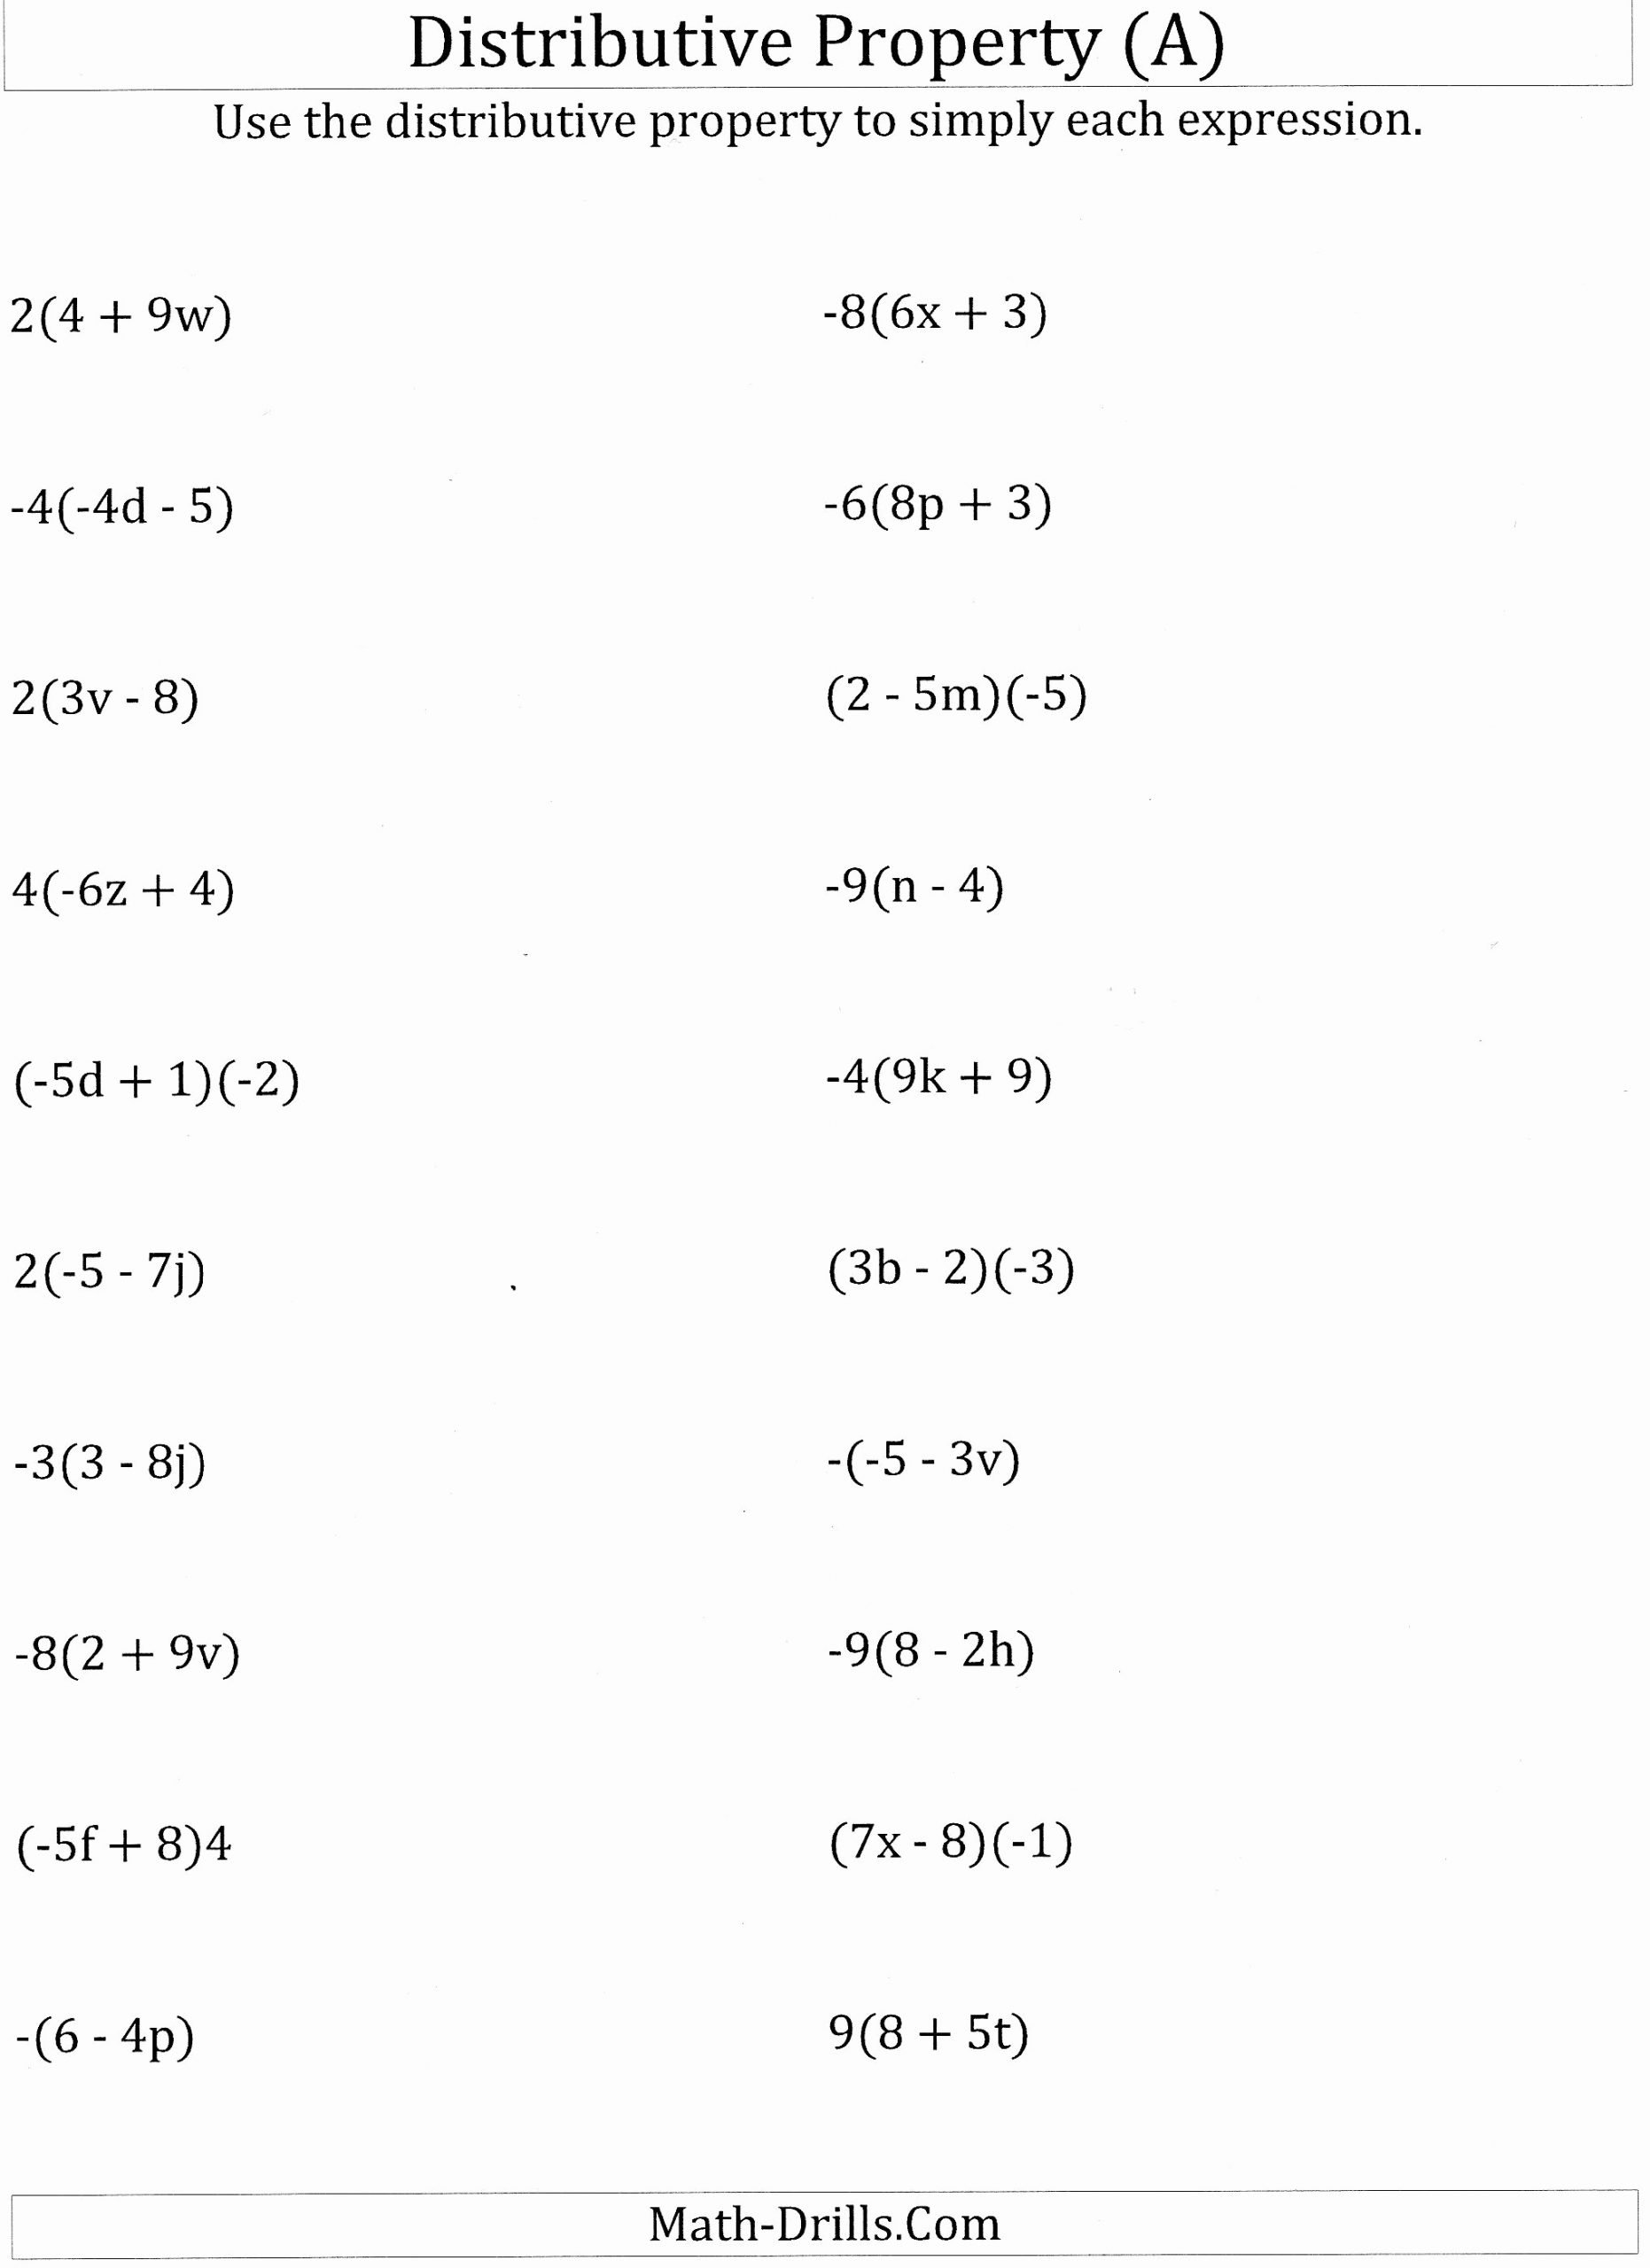 Distributive Property Worksheets 7th Grade Lovely Worksheet Math Worksheets Distributive Property